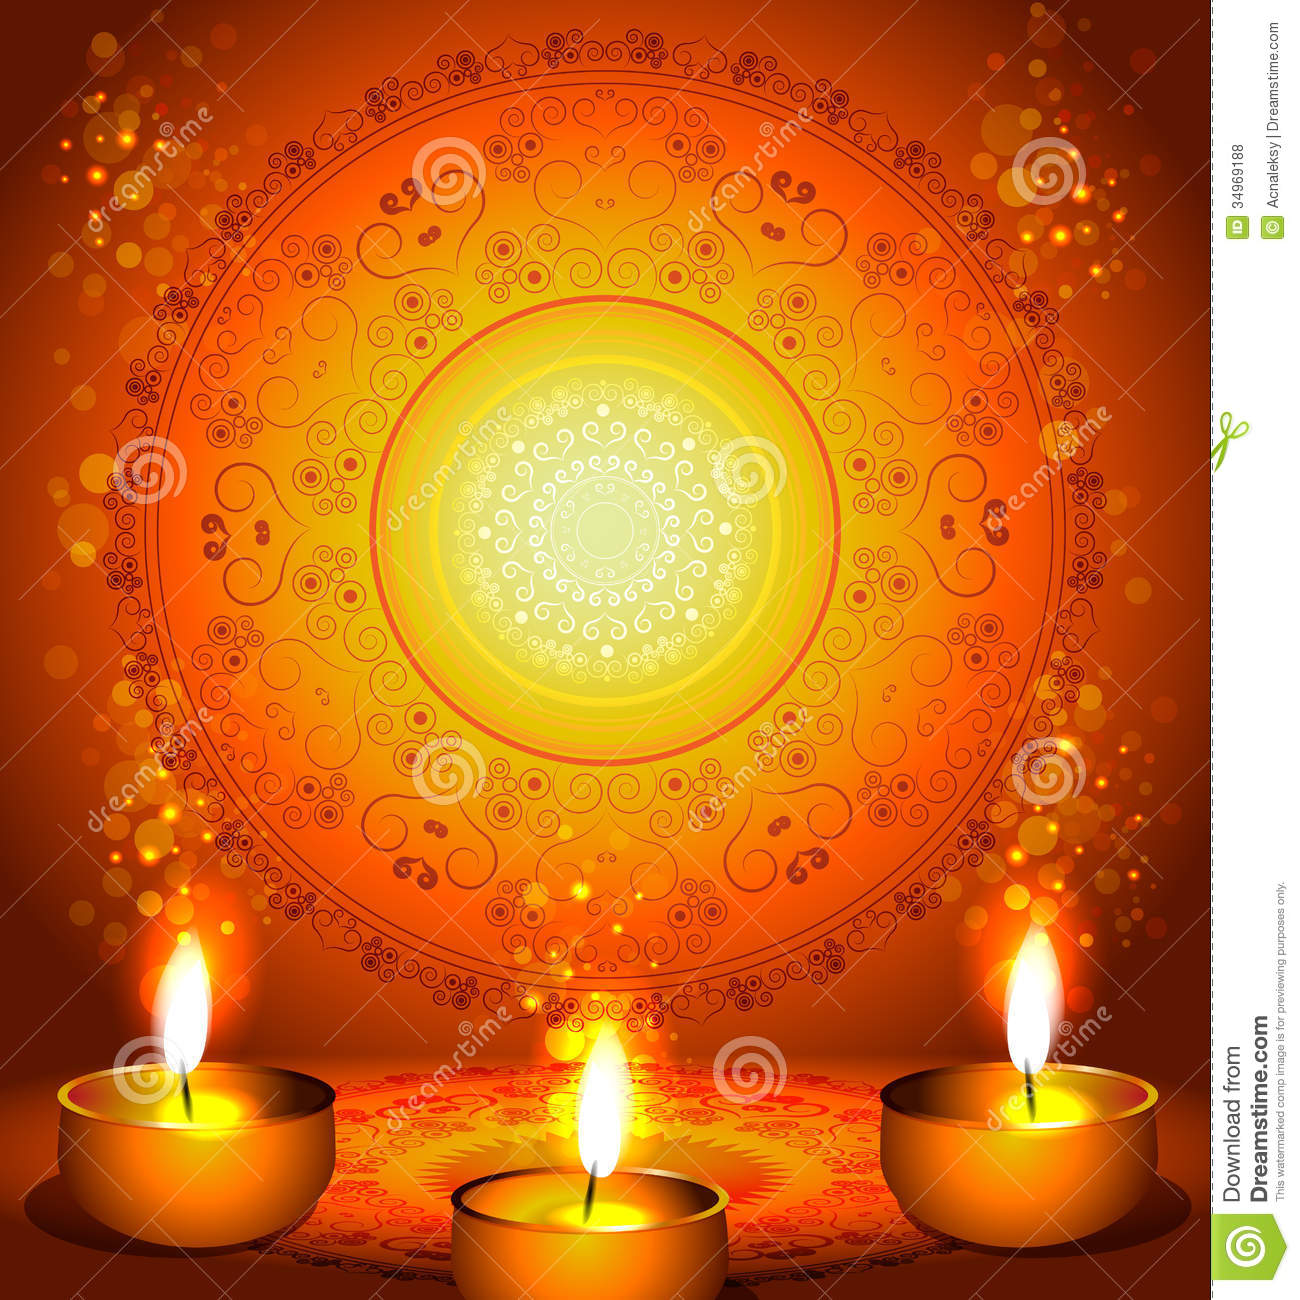 Happy Diwali Hd Wallpaper With Quotes Background For Diwali Festival With Lamps Royalty Free